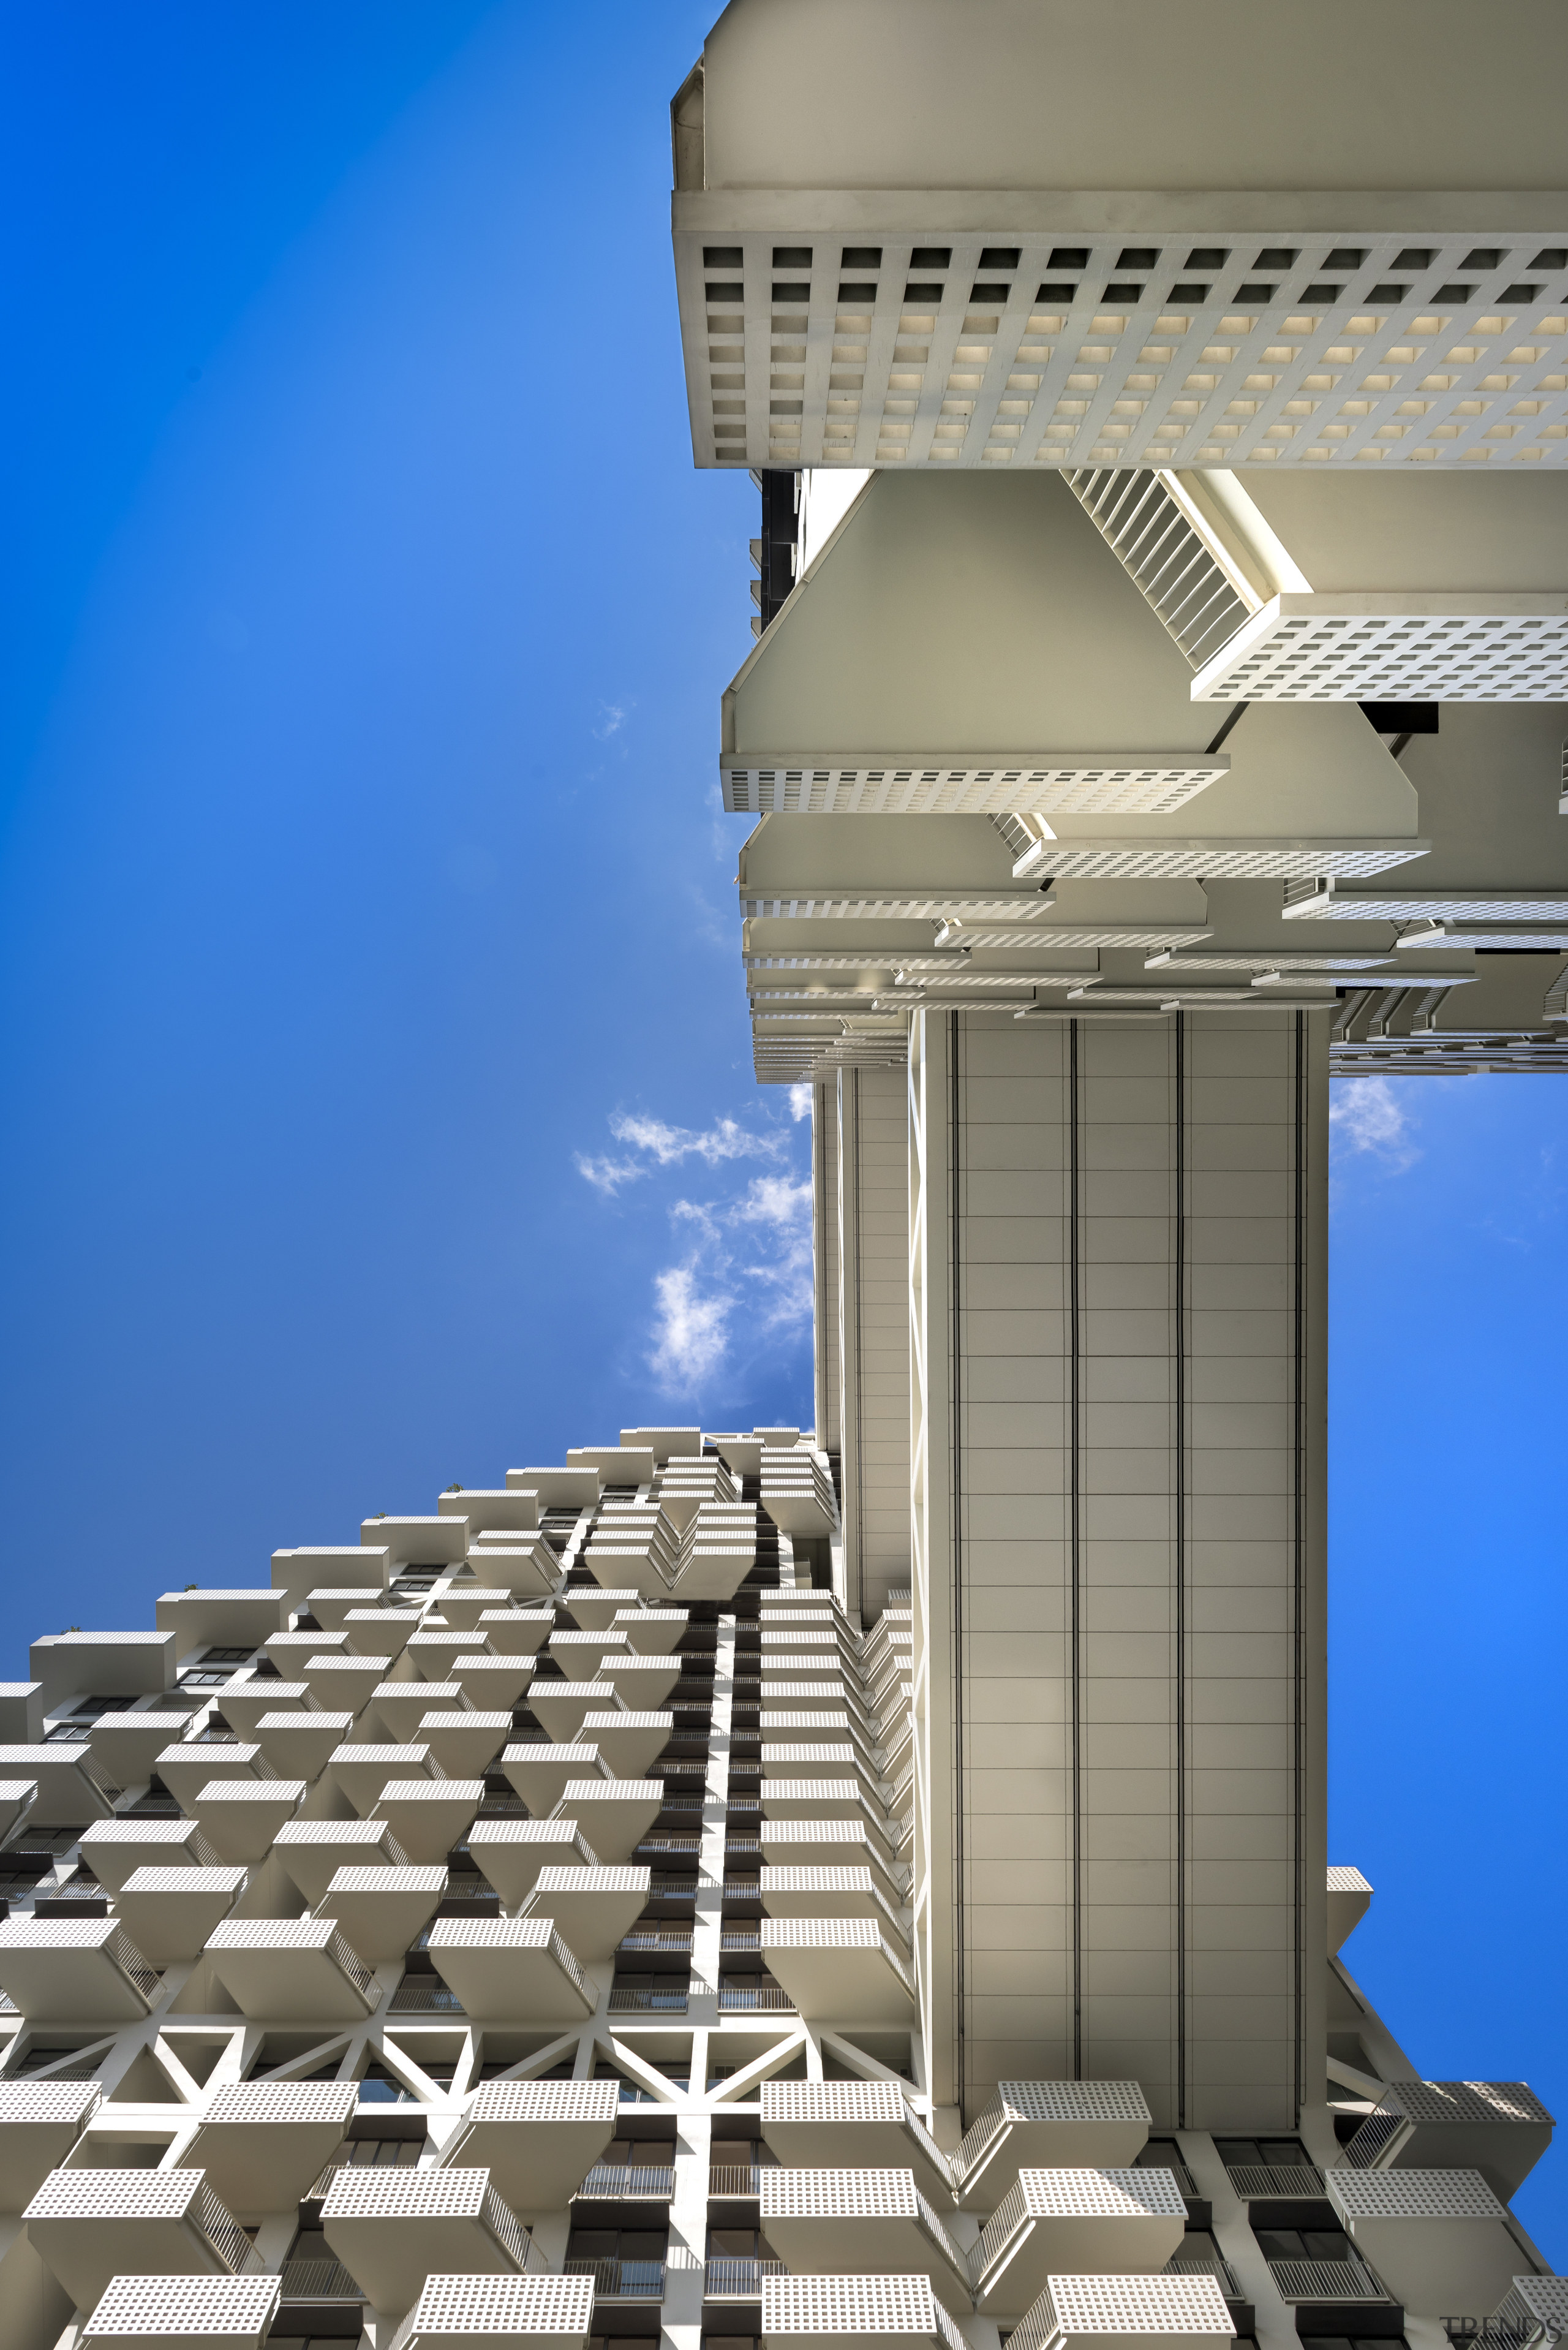 Bridges at levels 14, 26 and 38 span architecture, building, column, daylighting, daytime, facade, landmark, sky, structure, gray, blue